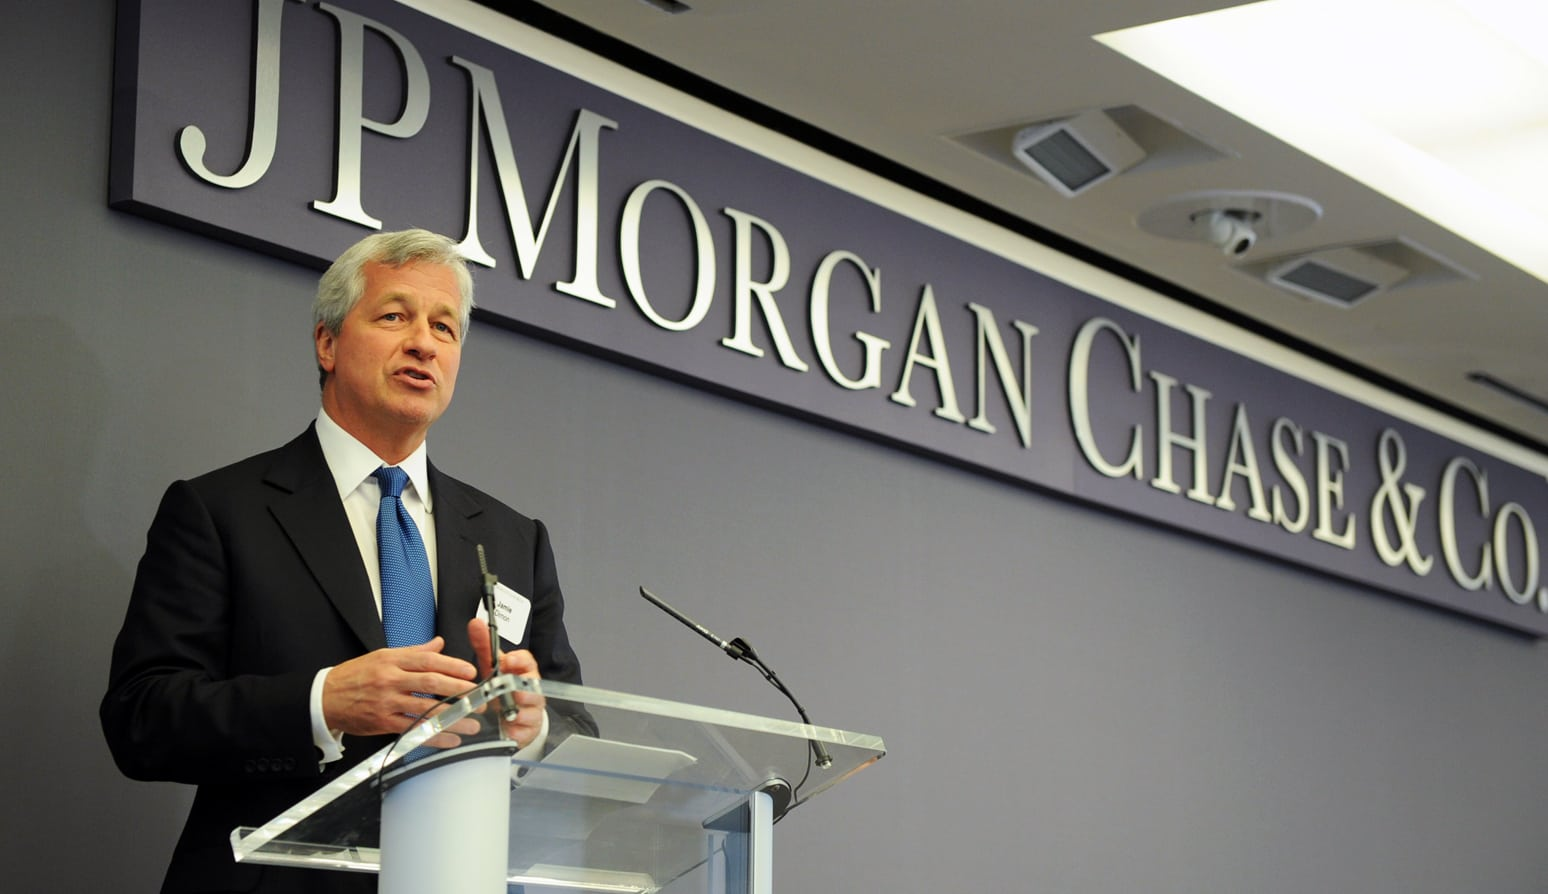 ap317009074002 - JP Morgan CIO Lori Beer Says That Blockchain Will Replace Existing Technology